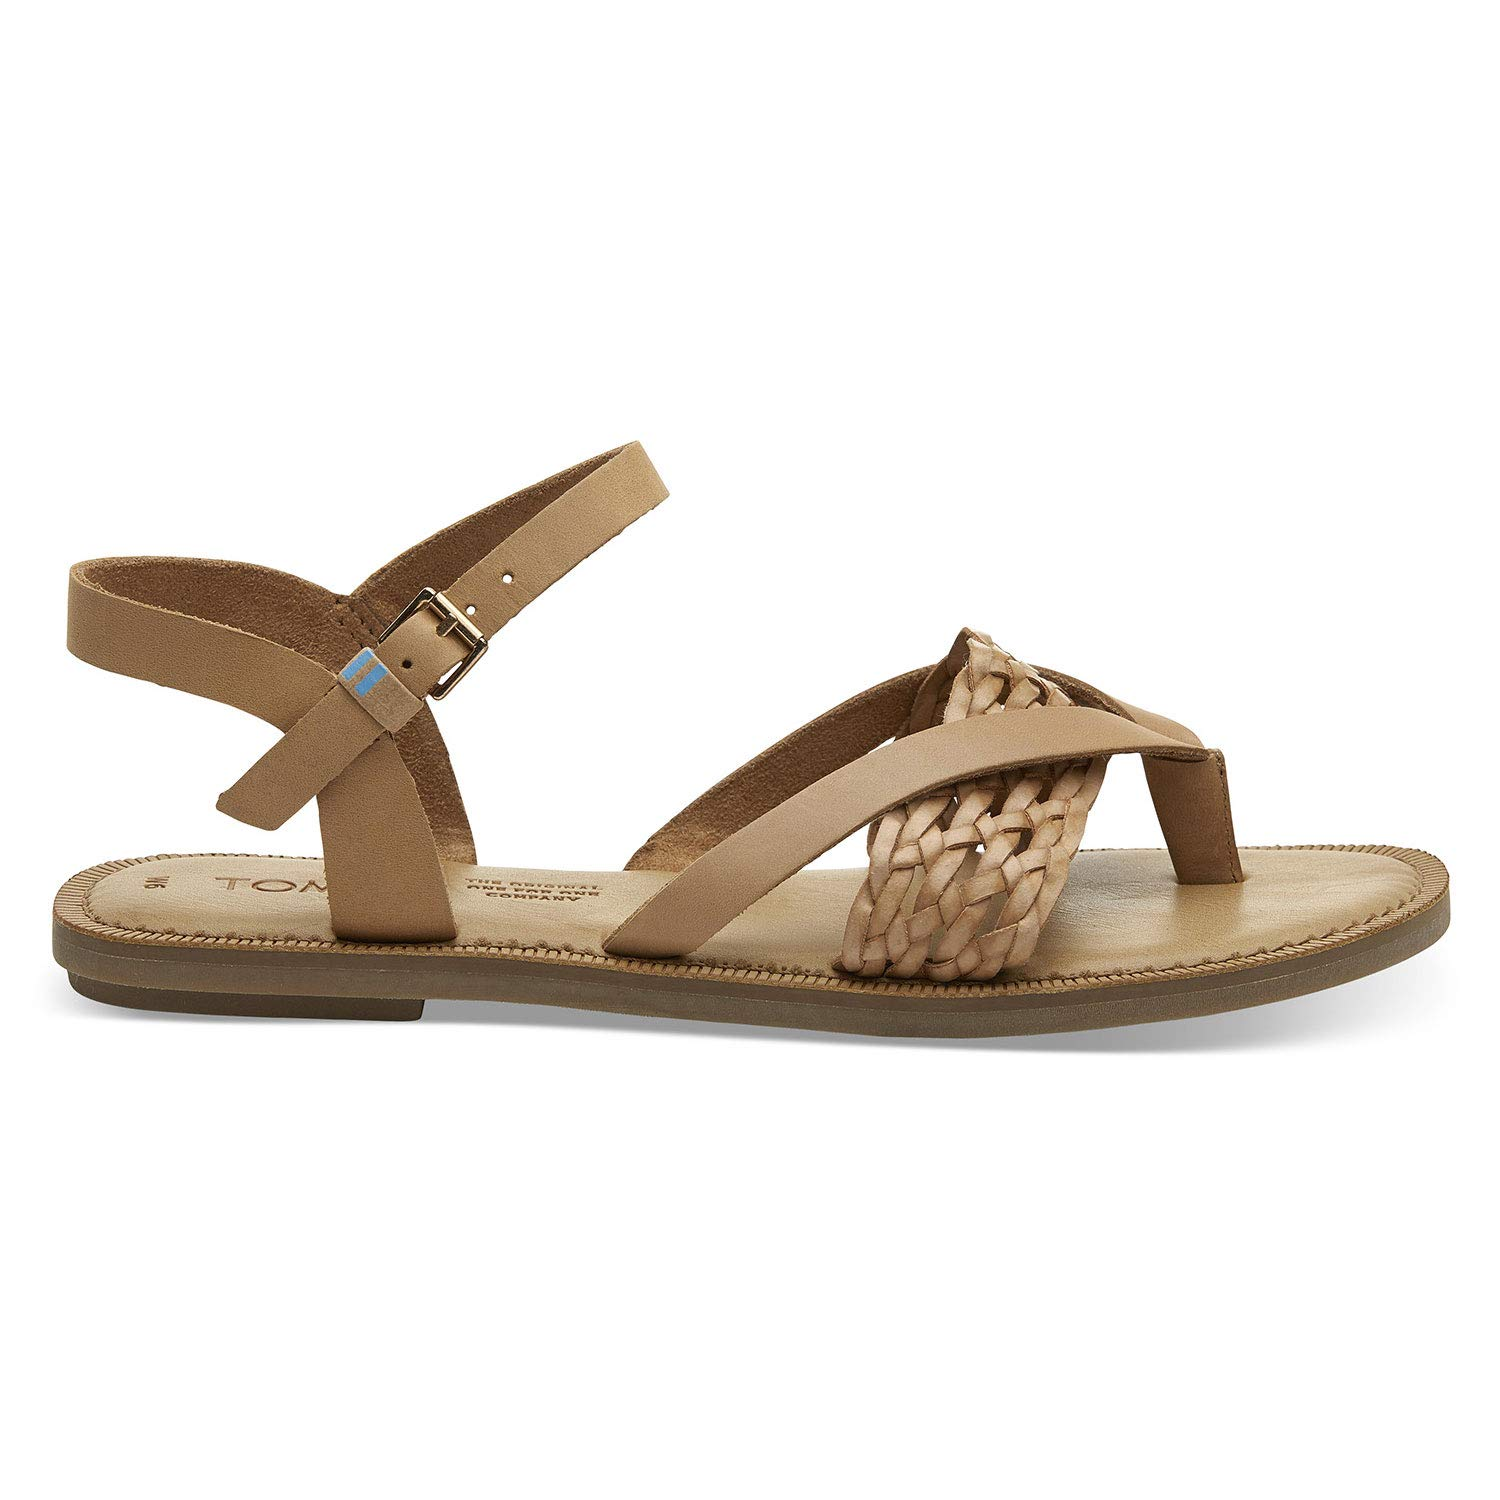 TOMS Honey Leather with Synthetic Braid Strap Women's Lexie Sandals (Size: 7.5)